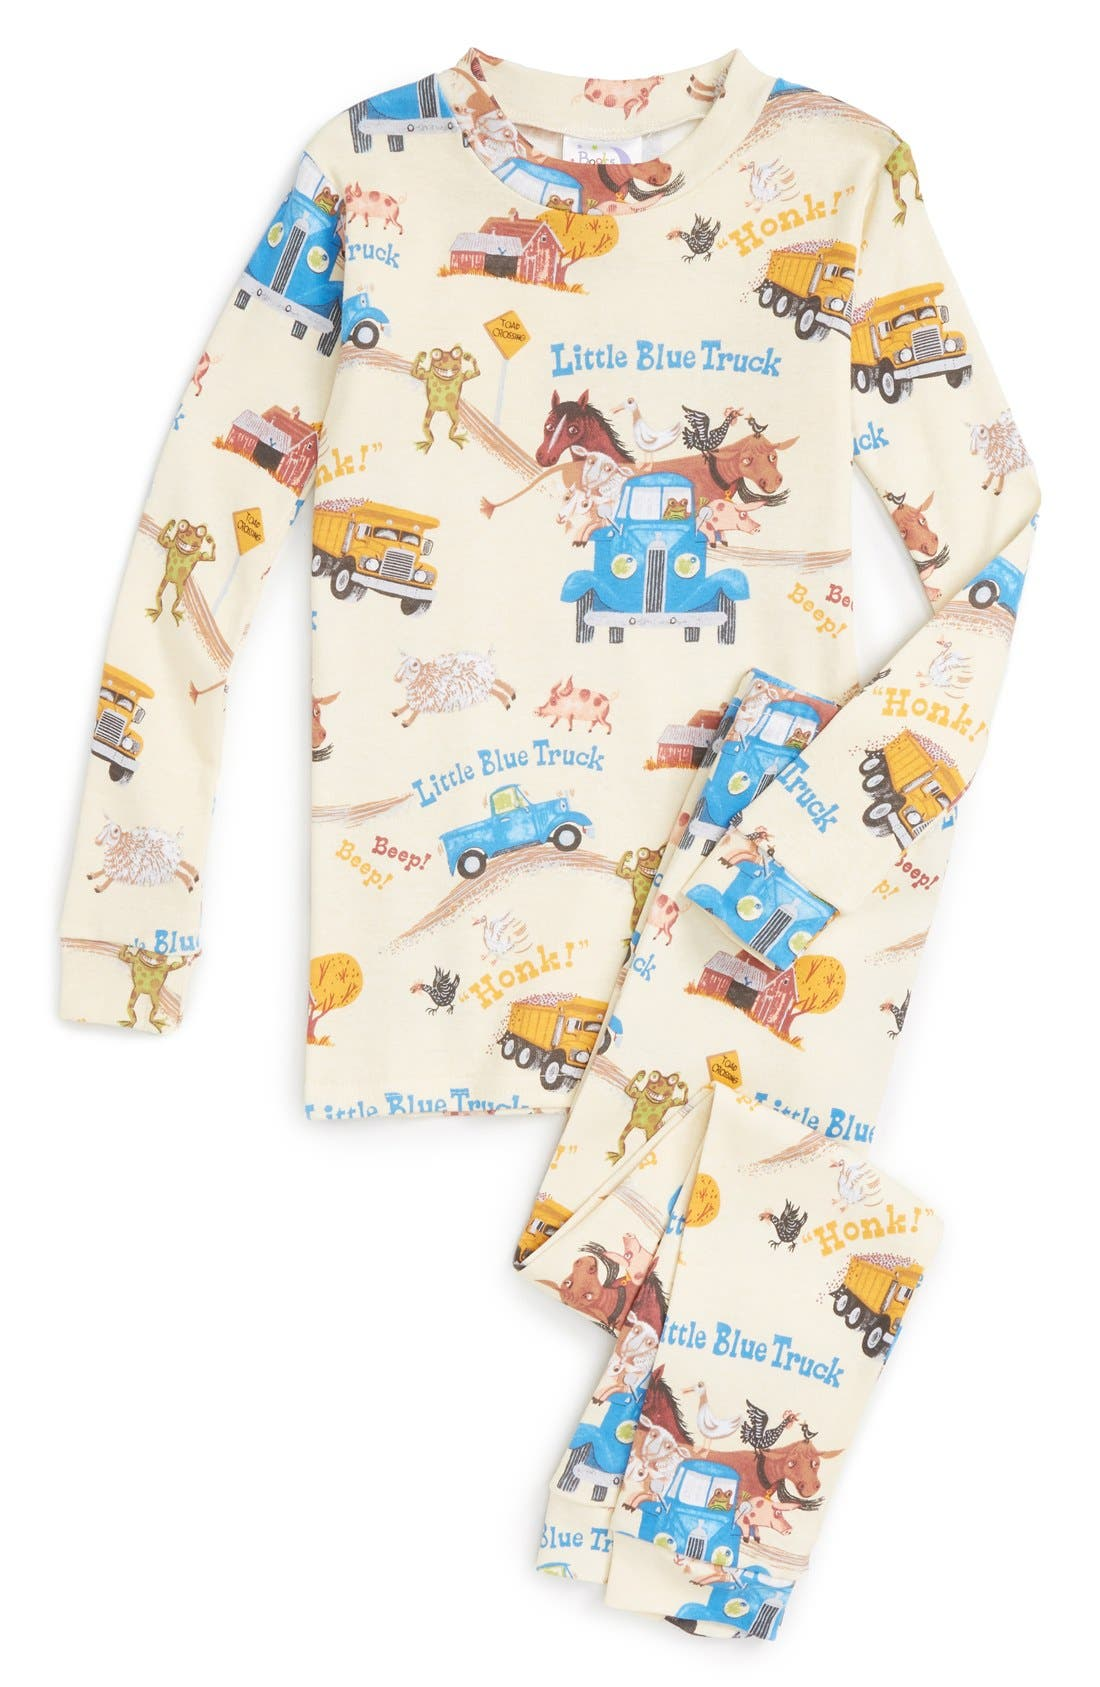 Main Image - Books to Bed Little Blue Truck Fitted Two-Piece Pajamas (Toddler, Little Kid & Big Kid)